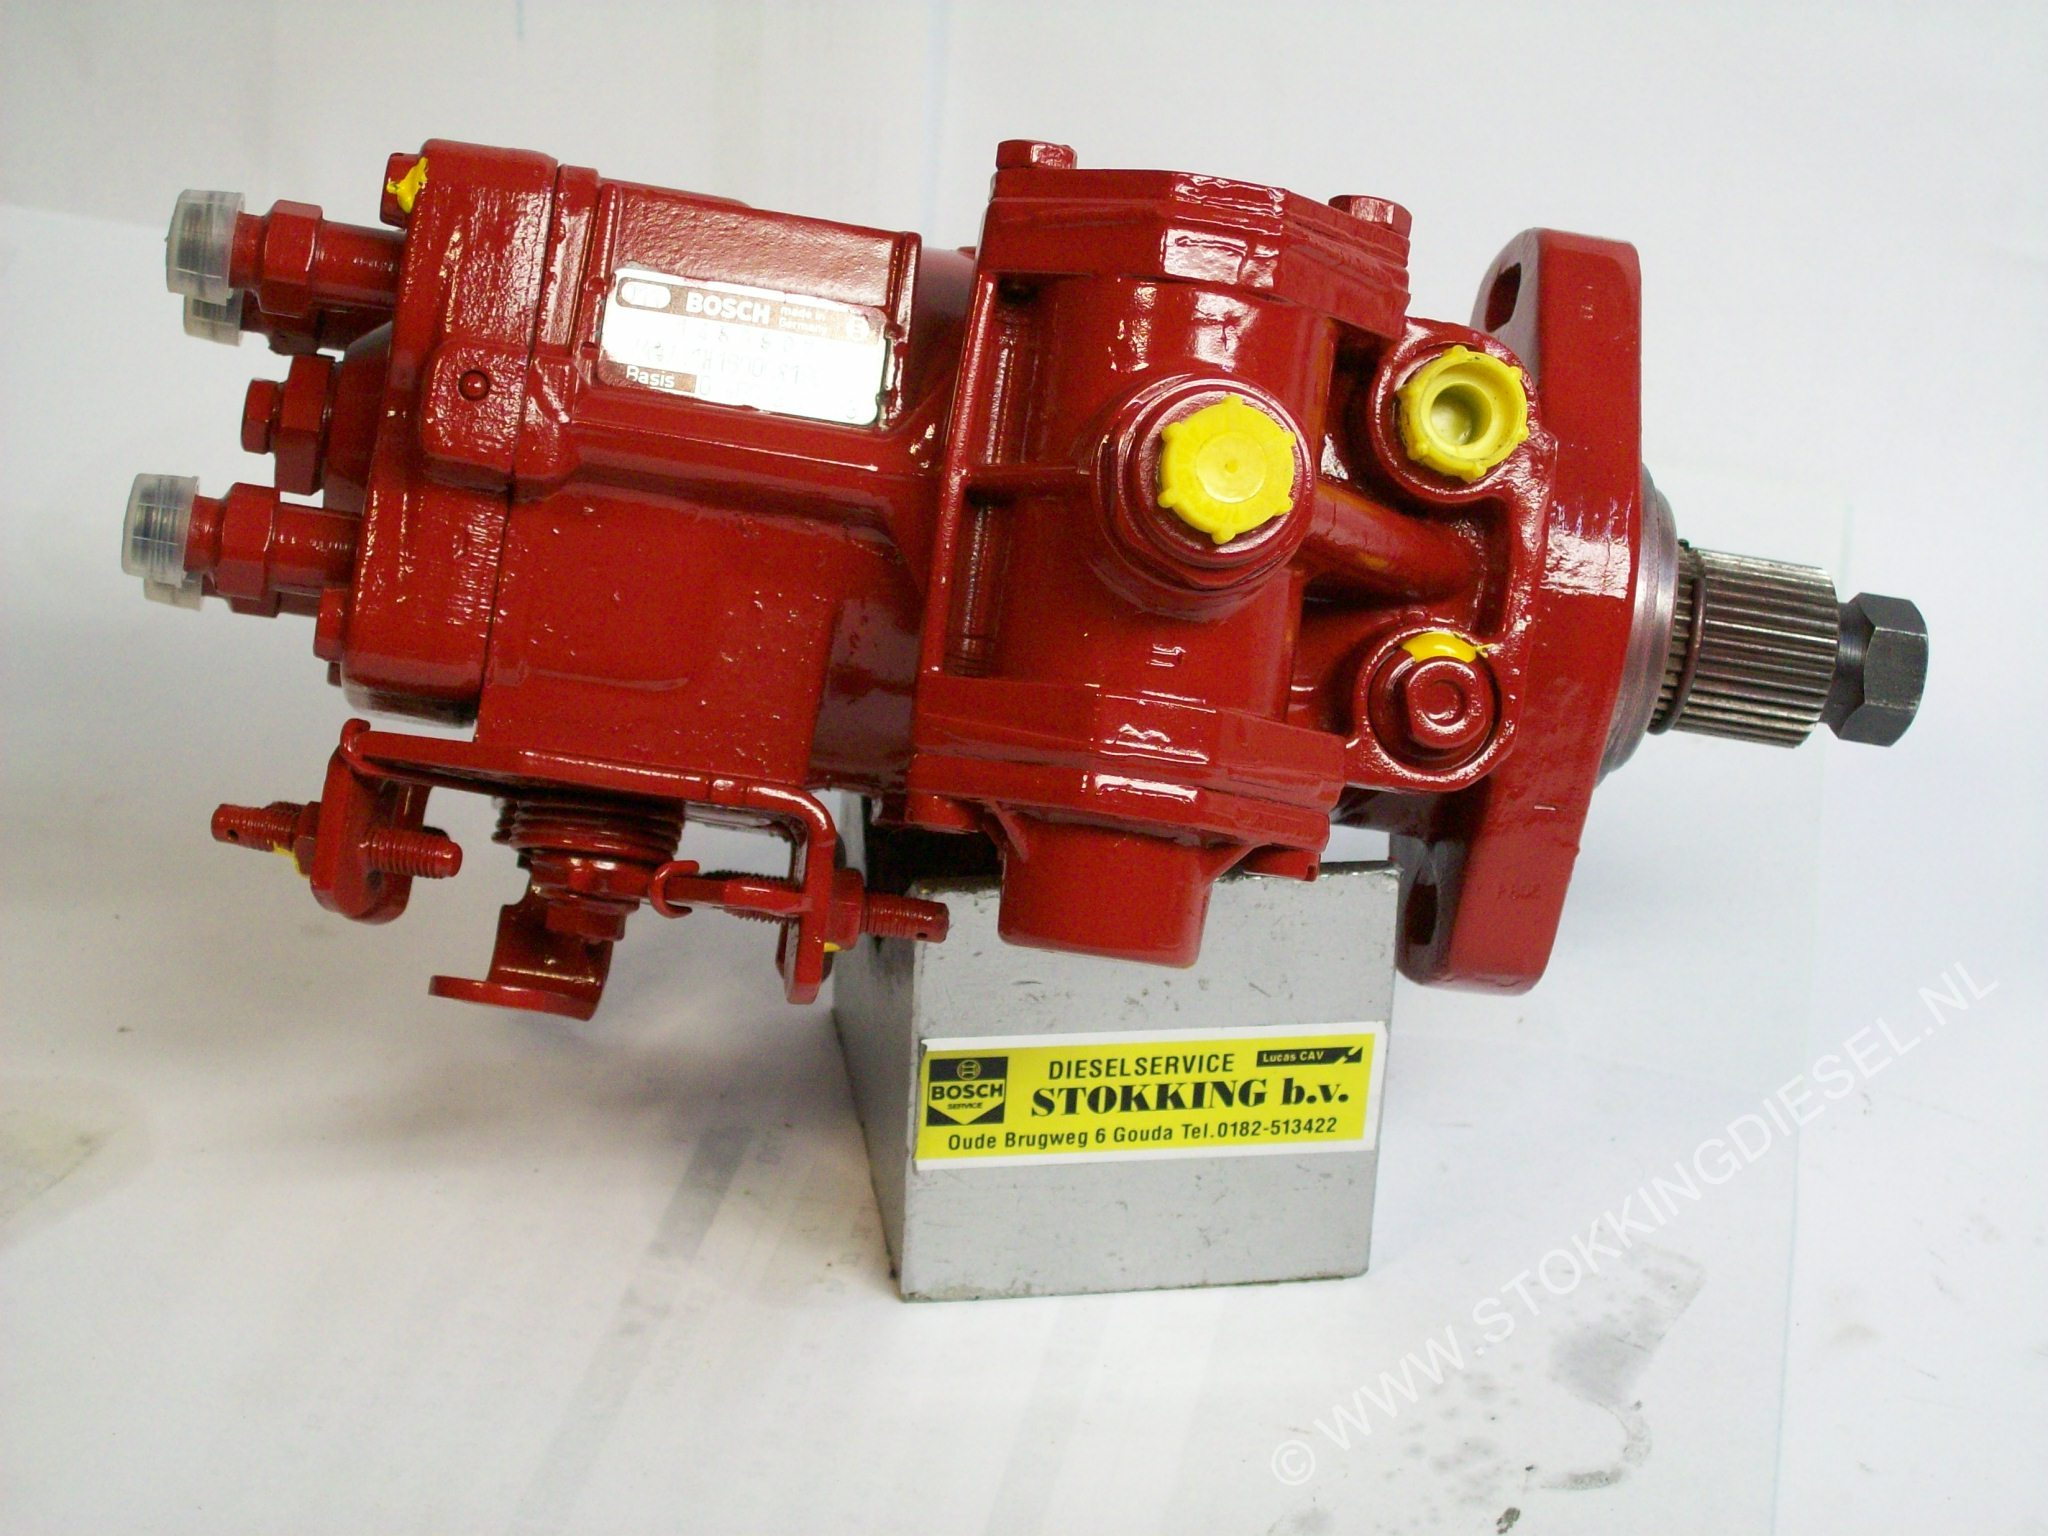 Fiat Tractor Parts Fuel Pump : Search results dieselservice stokking bv